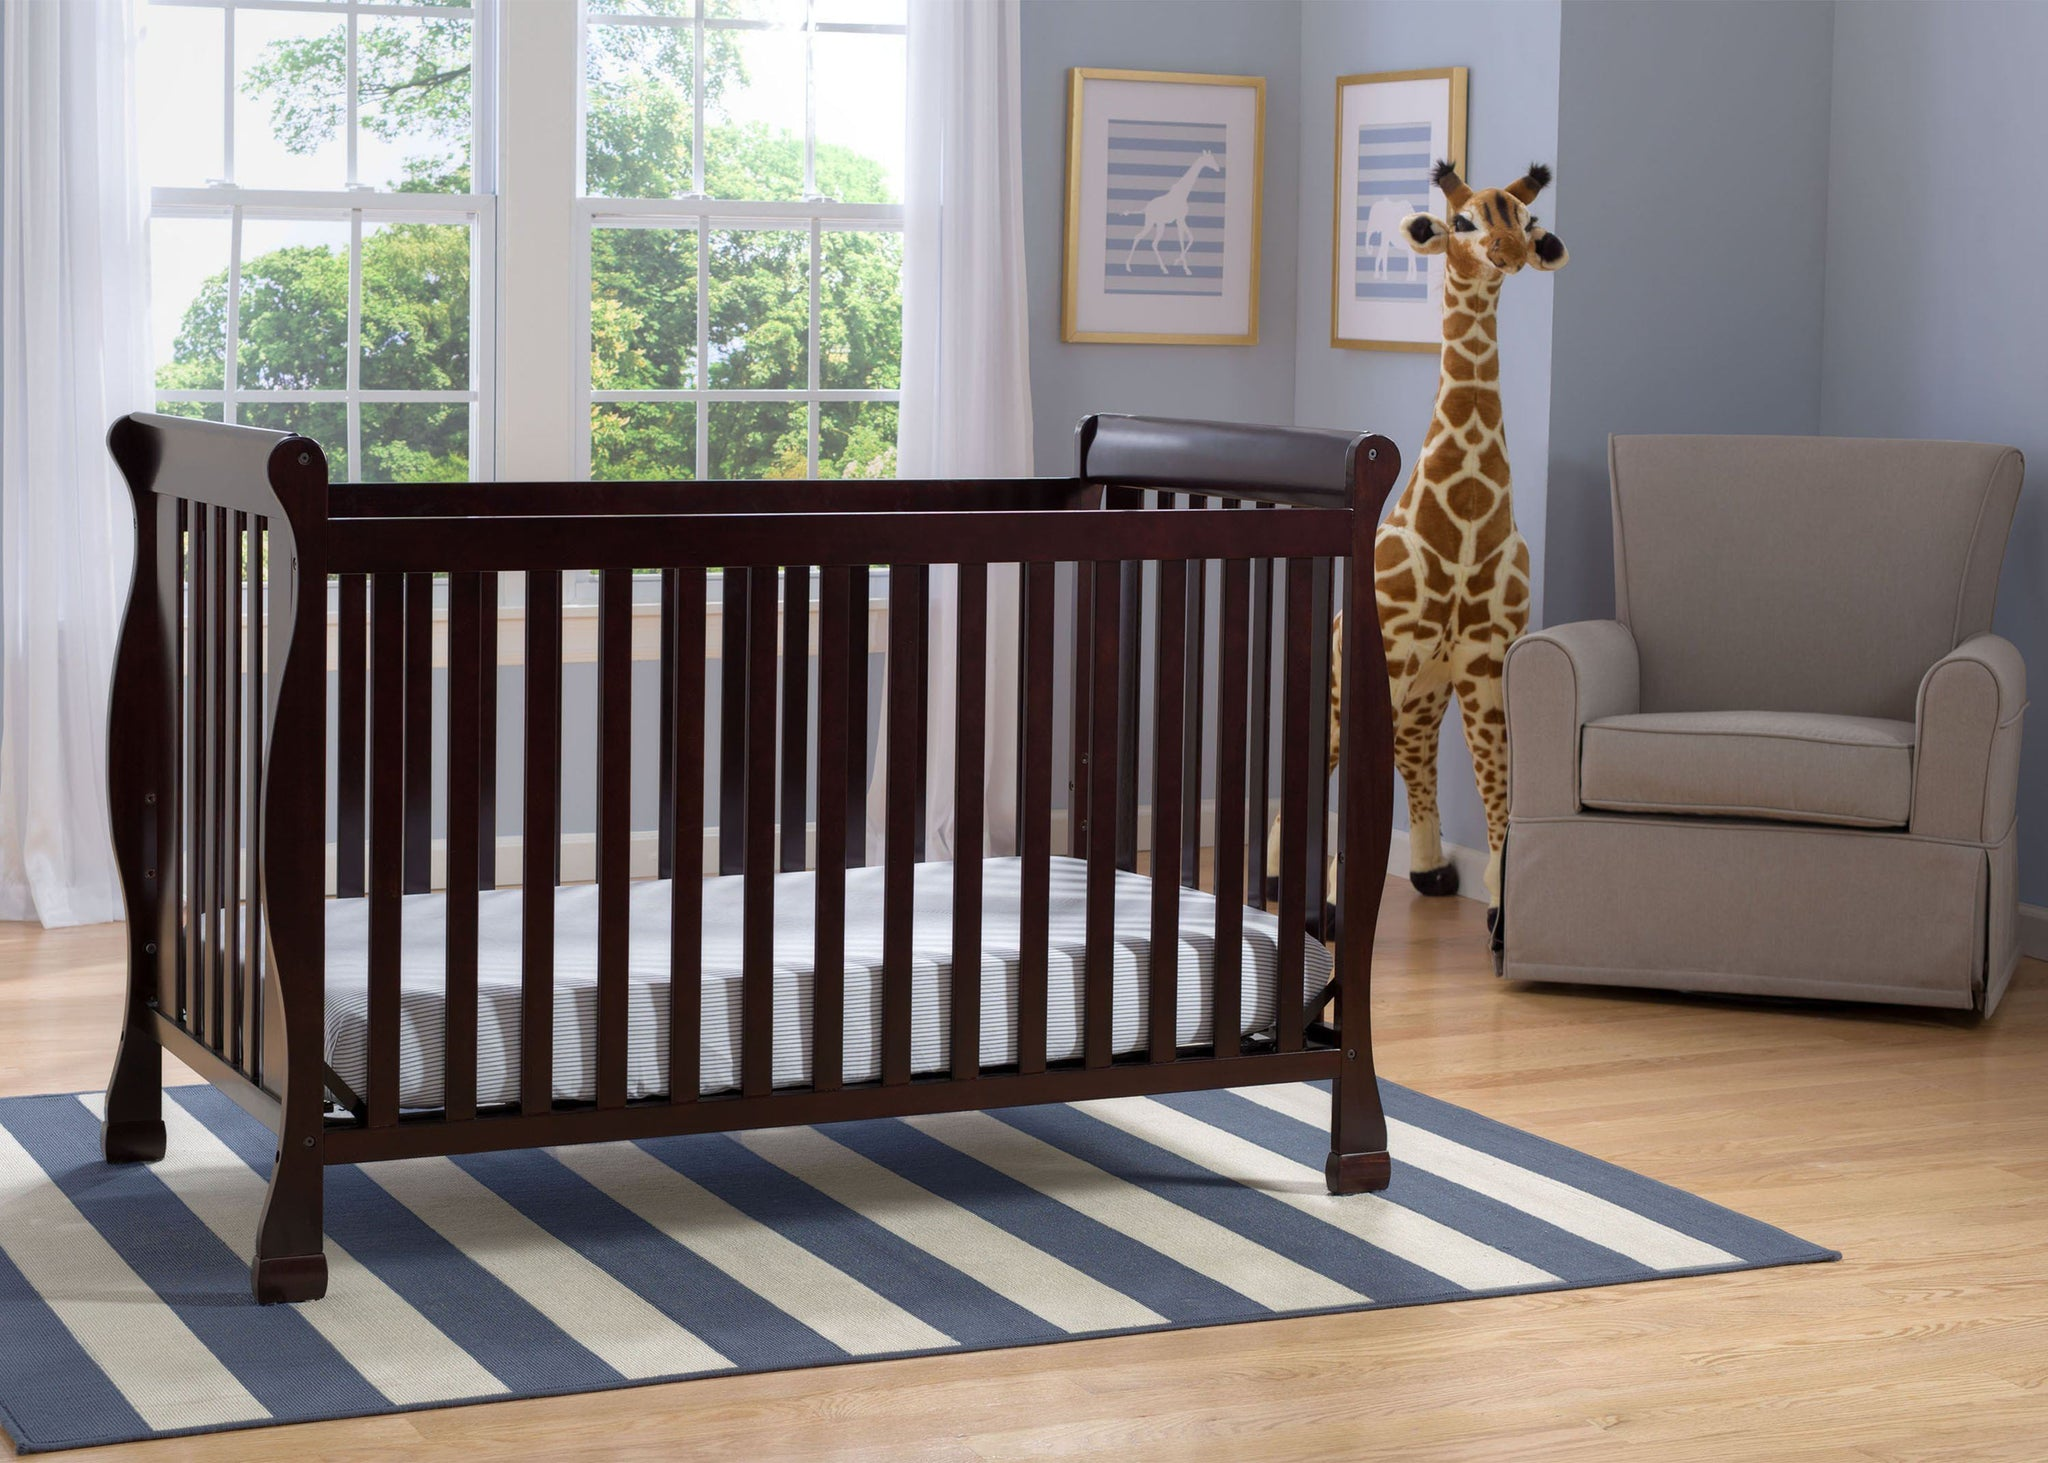 Delta Children Dark Chocolate (207) Riverside 4-in-1 Crib, room view, b1b